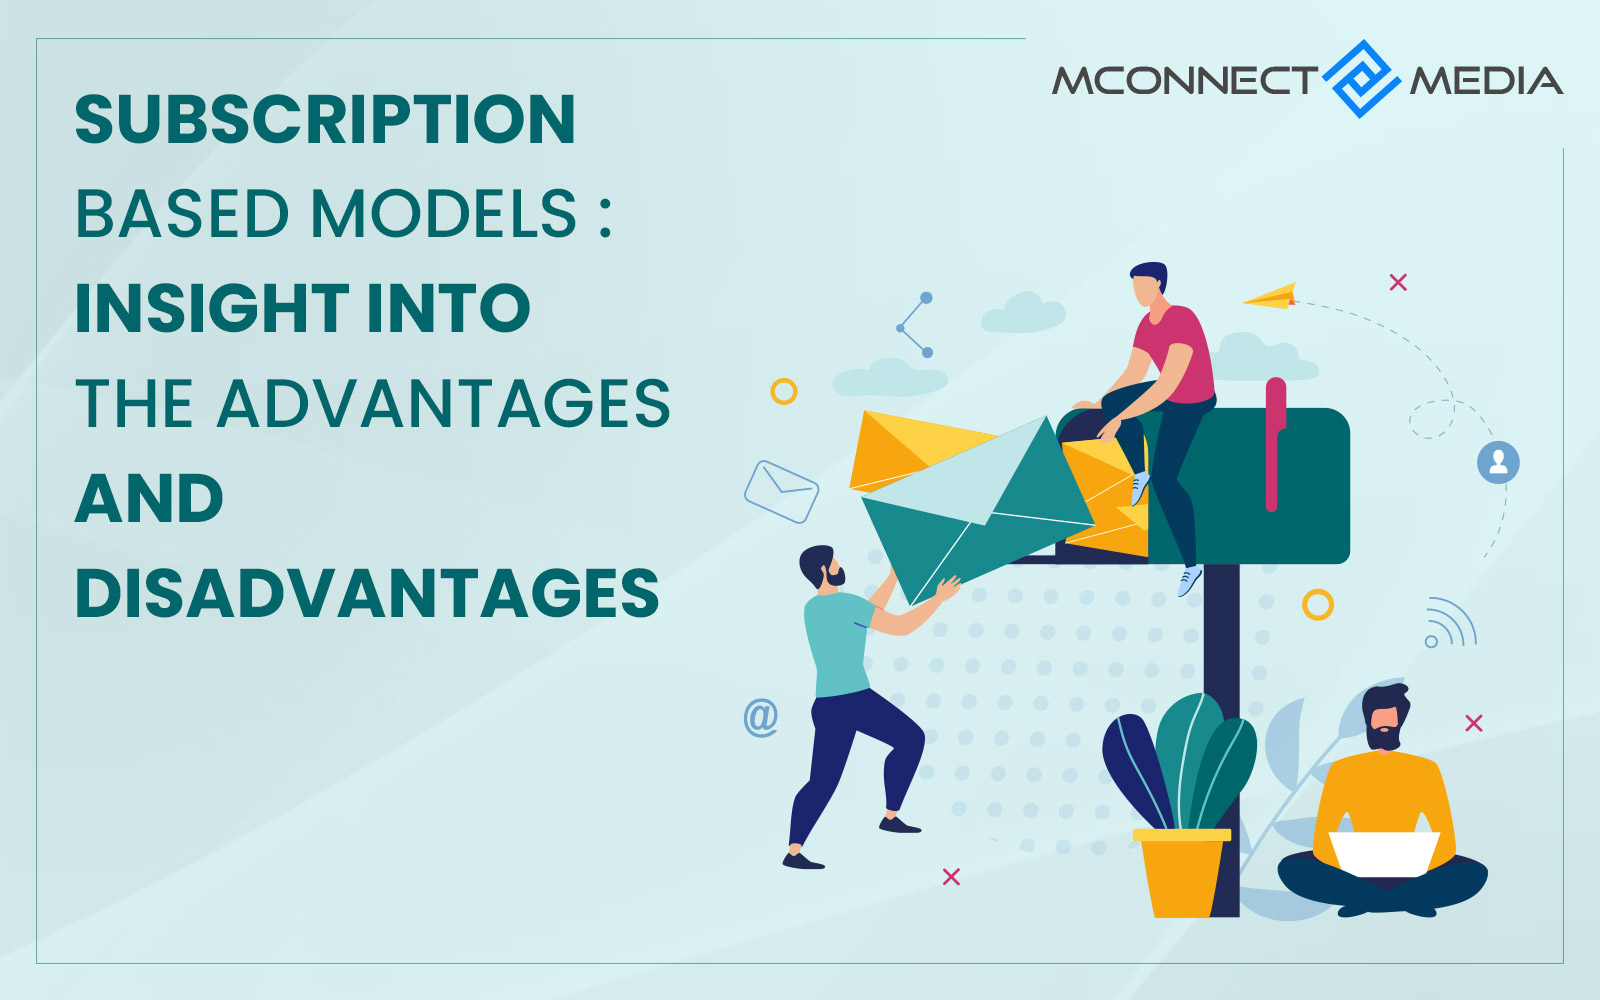 Subscription Based Models Insight Into The Advantages And Disadvantages